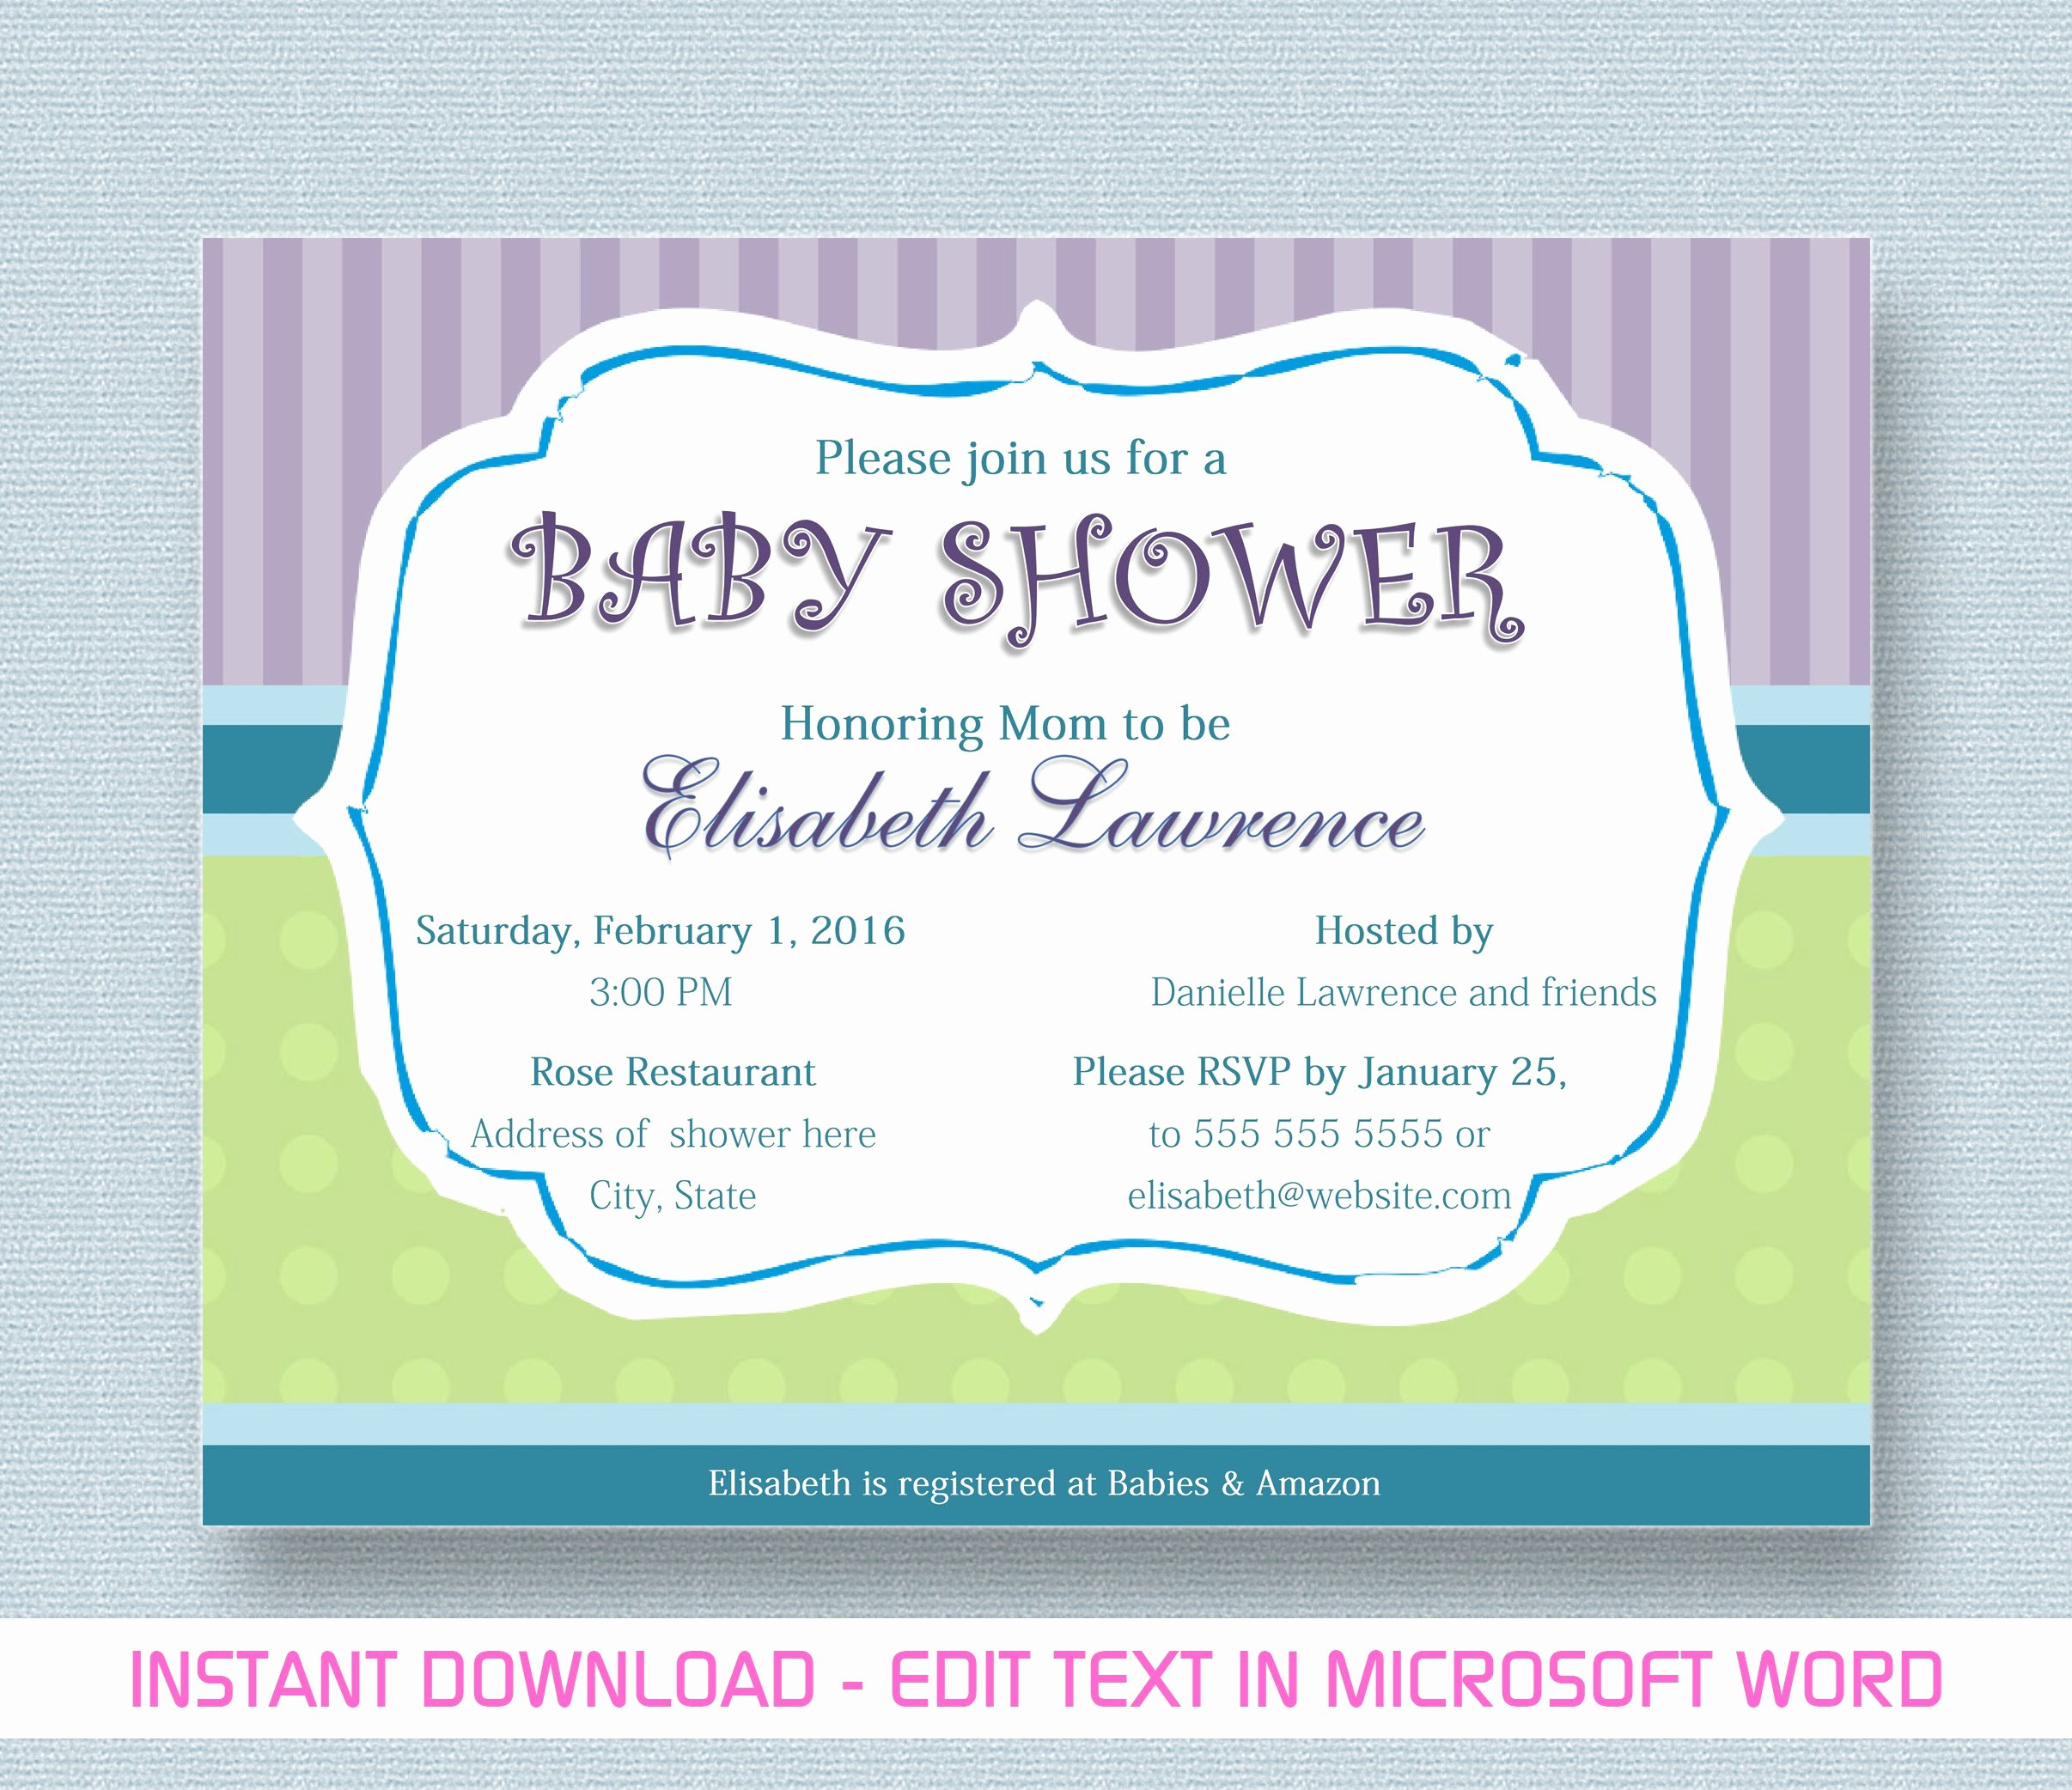 Word Template for Invitations New Baby Shower Invitation for Microsoft Word